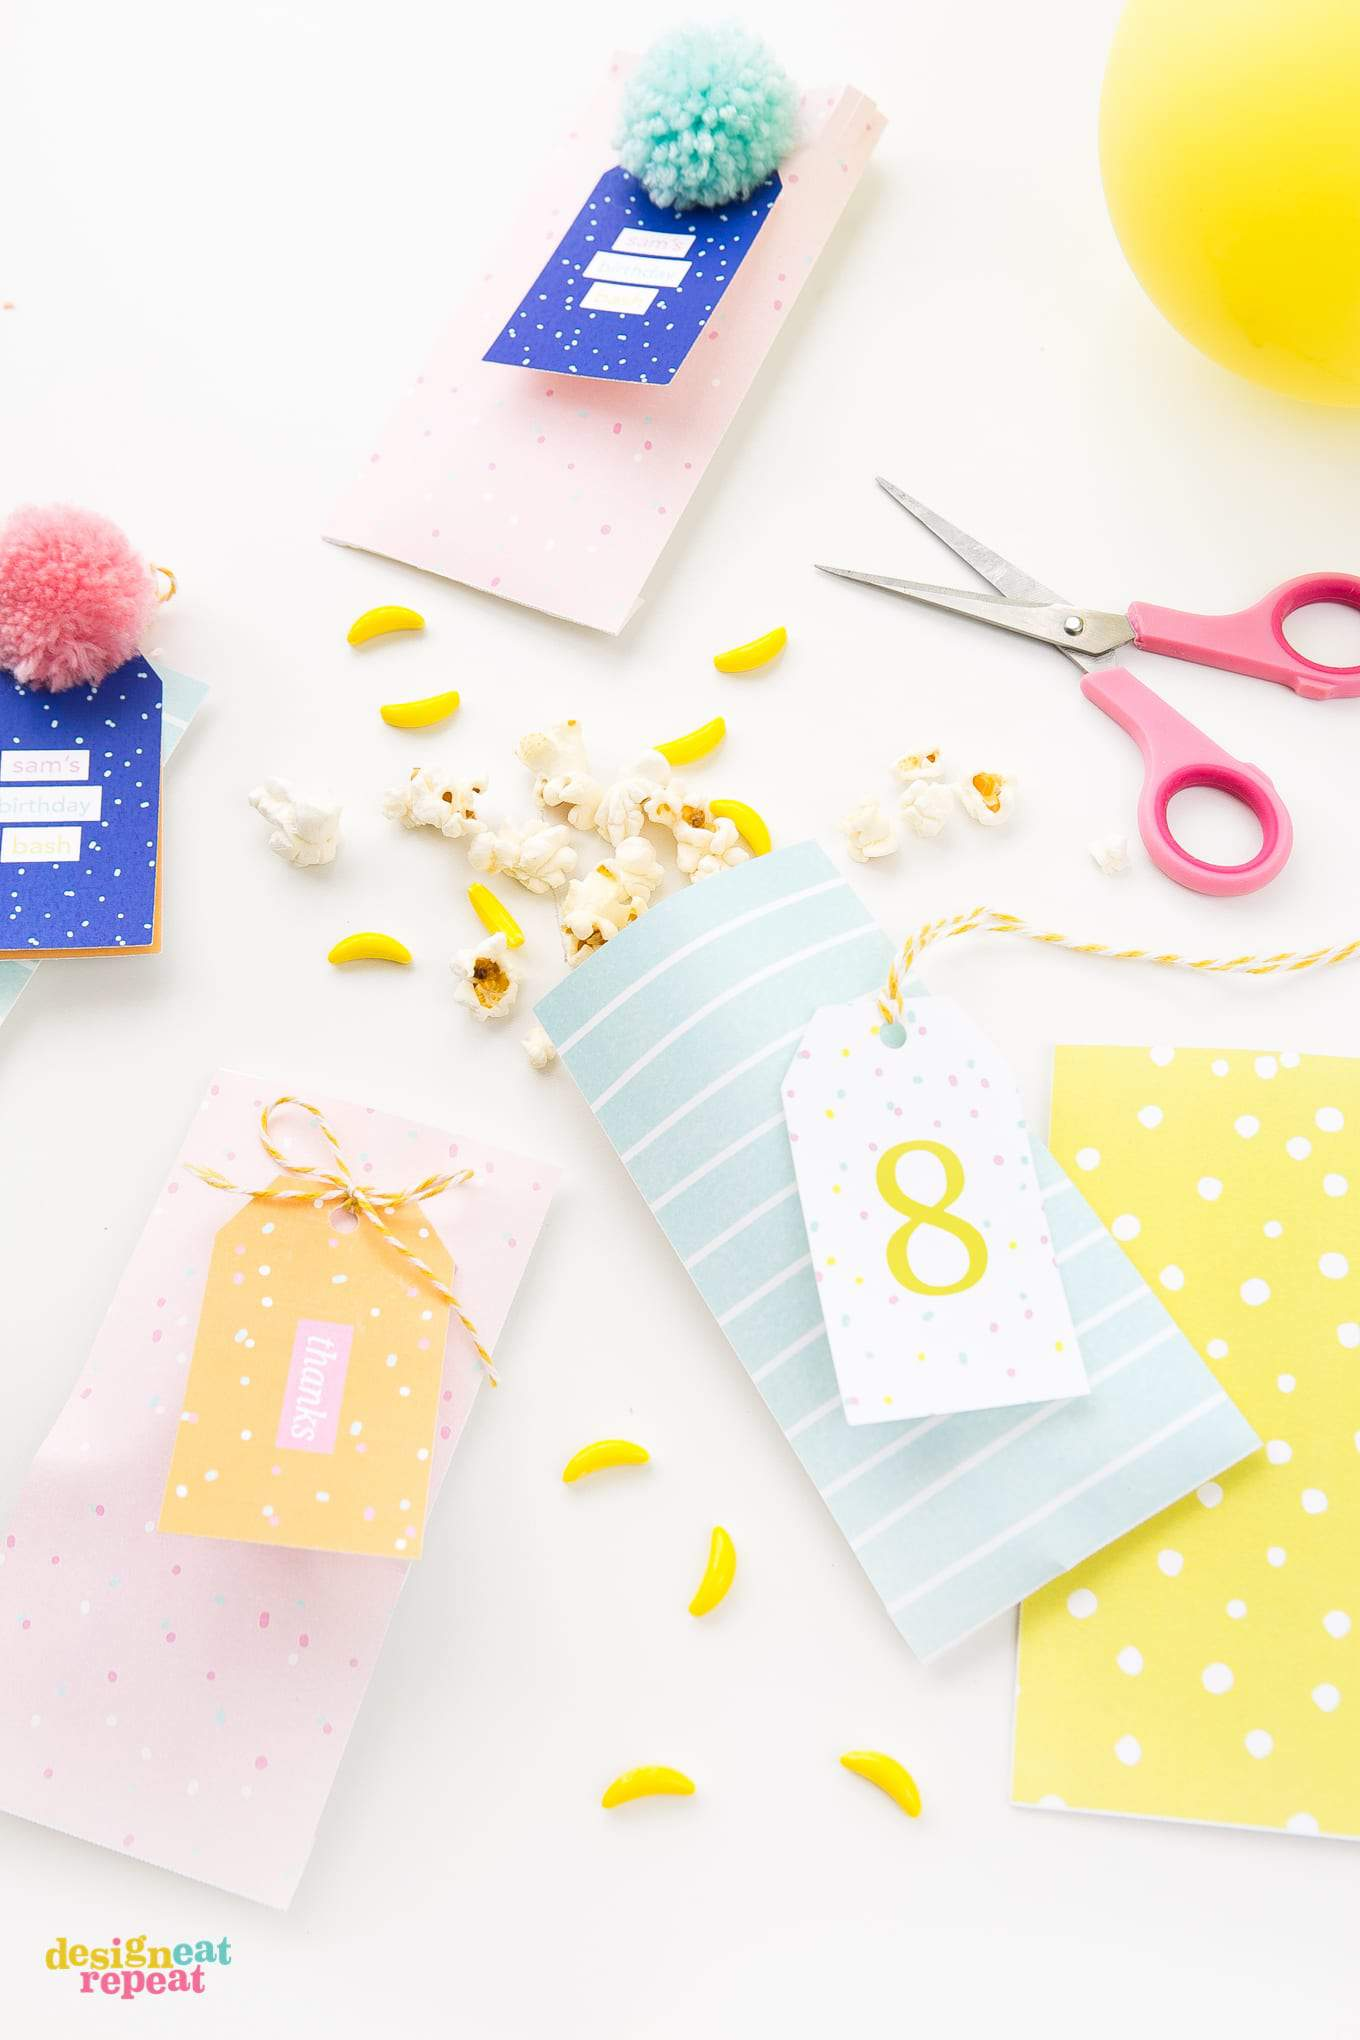 Pink, peach, blue, and yellow party favor bags with matching printable gift tags.